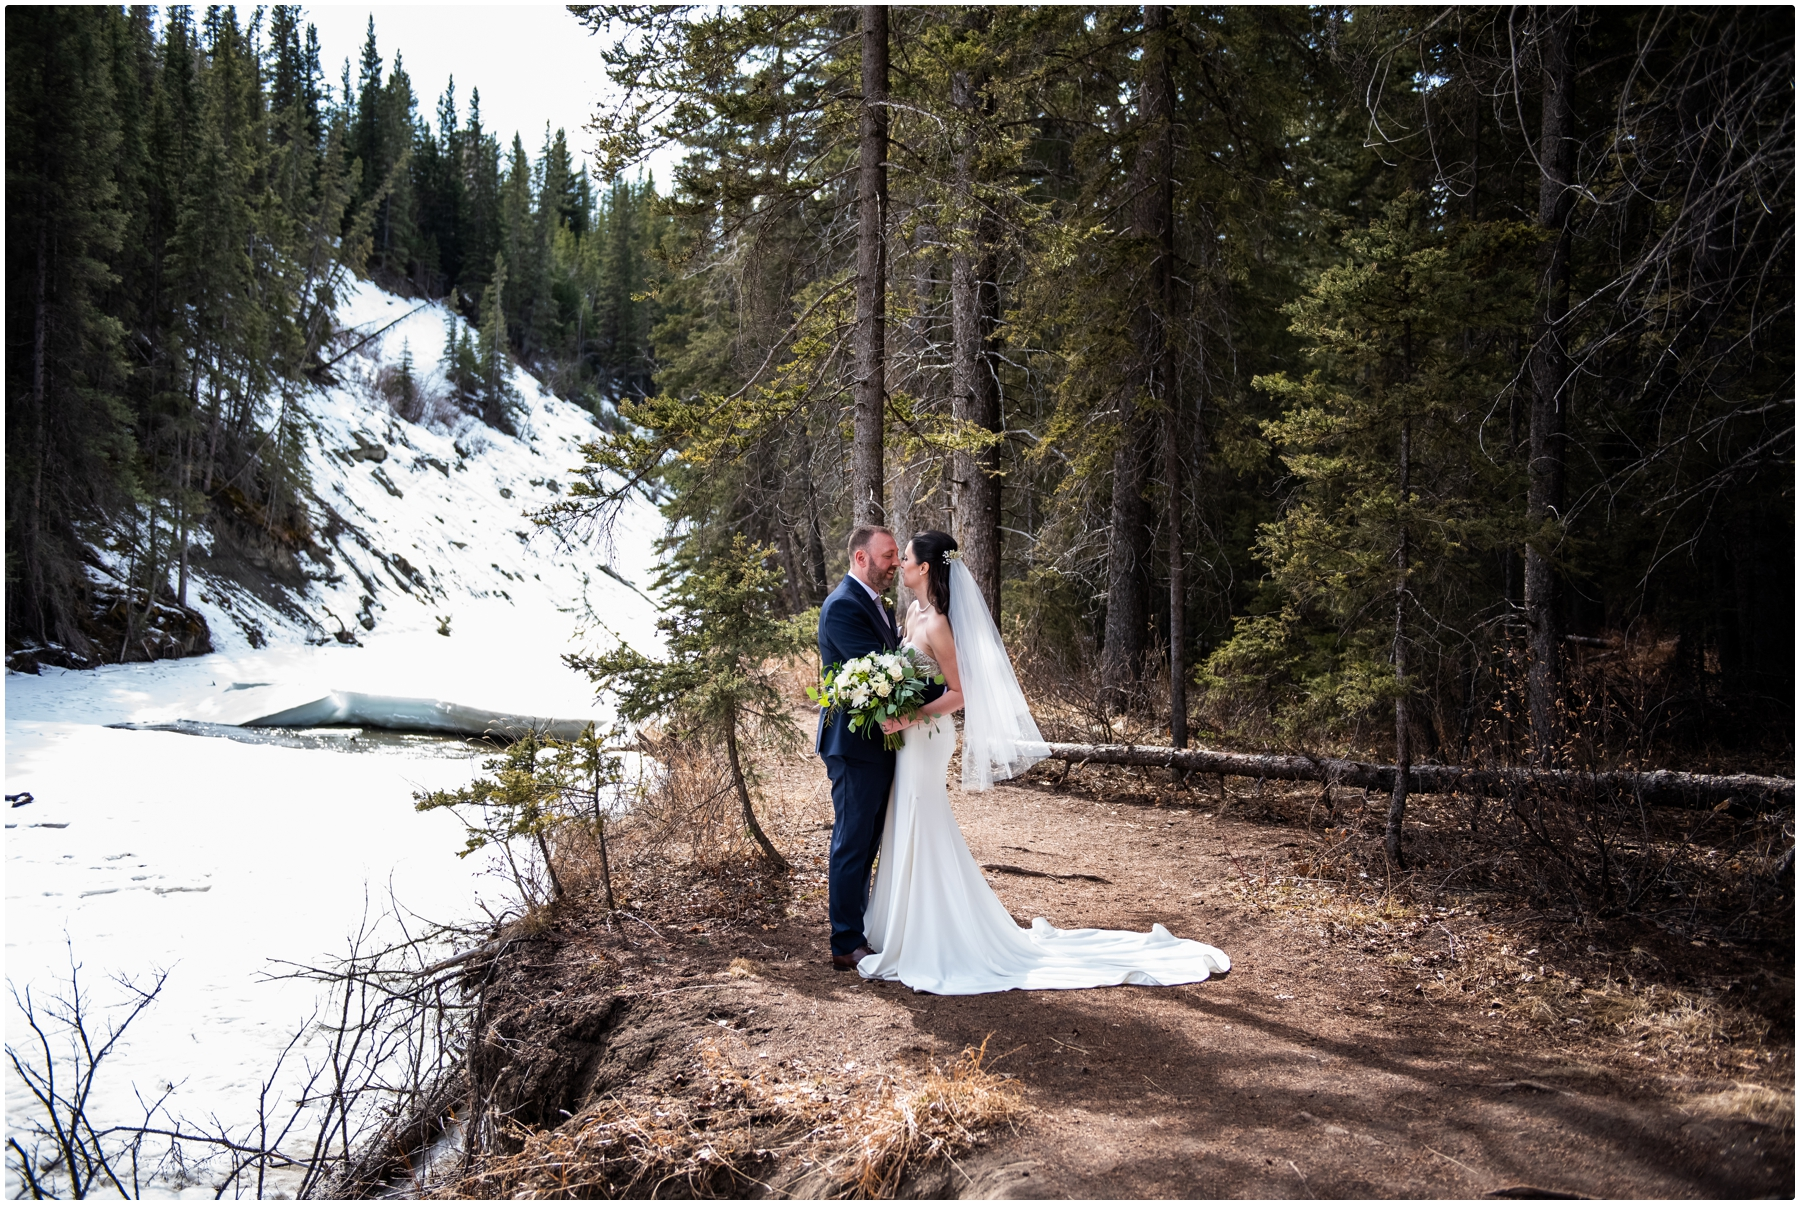 Bride & Groom Wedding Photography Calgary